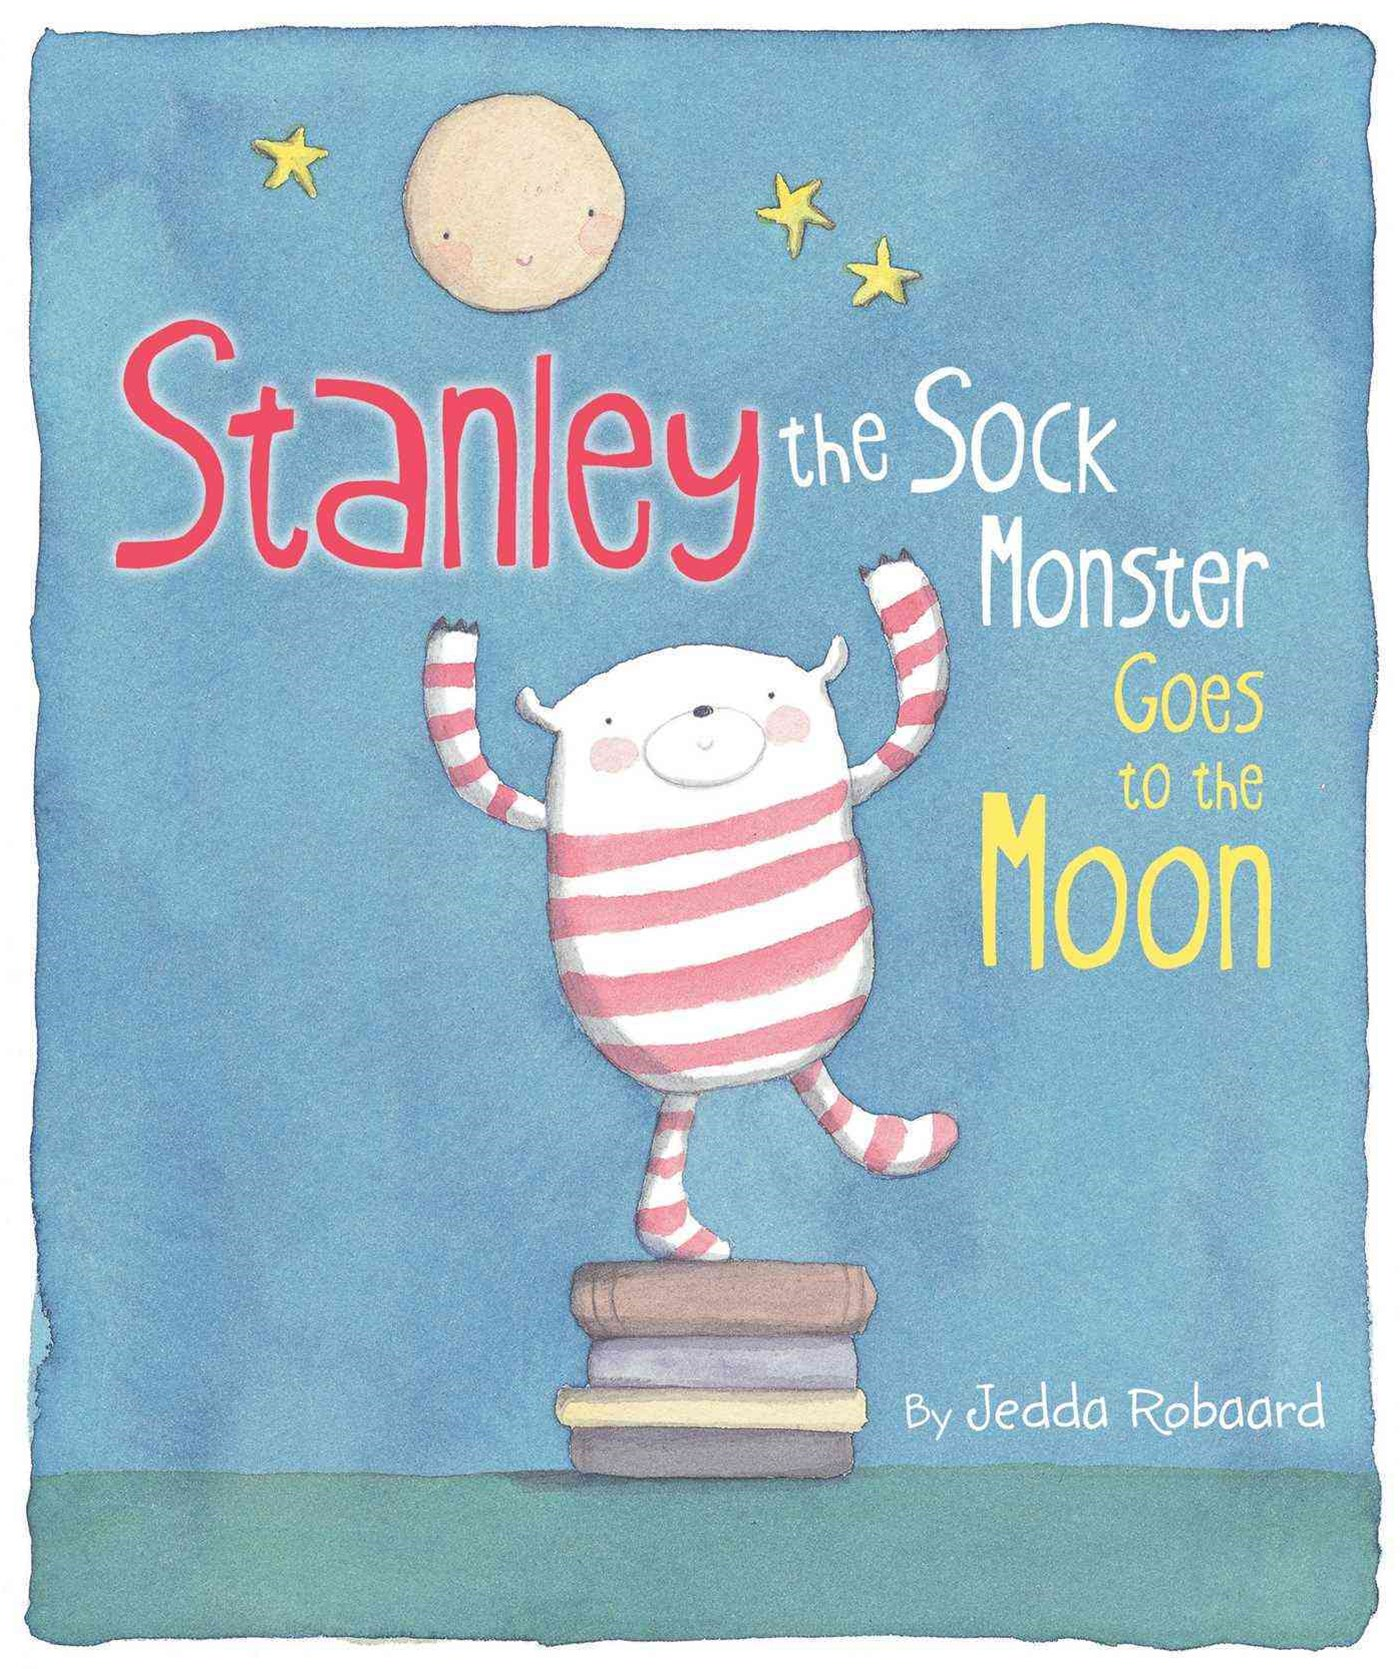 Stanley the Sock Monster Goes to the Moon